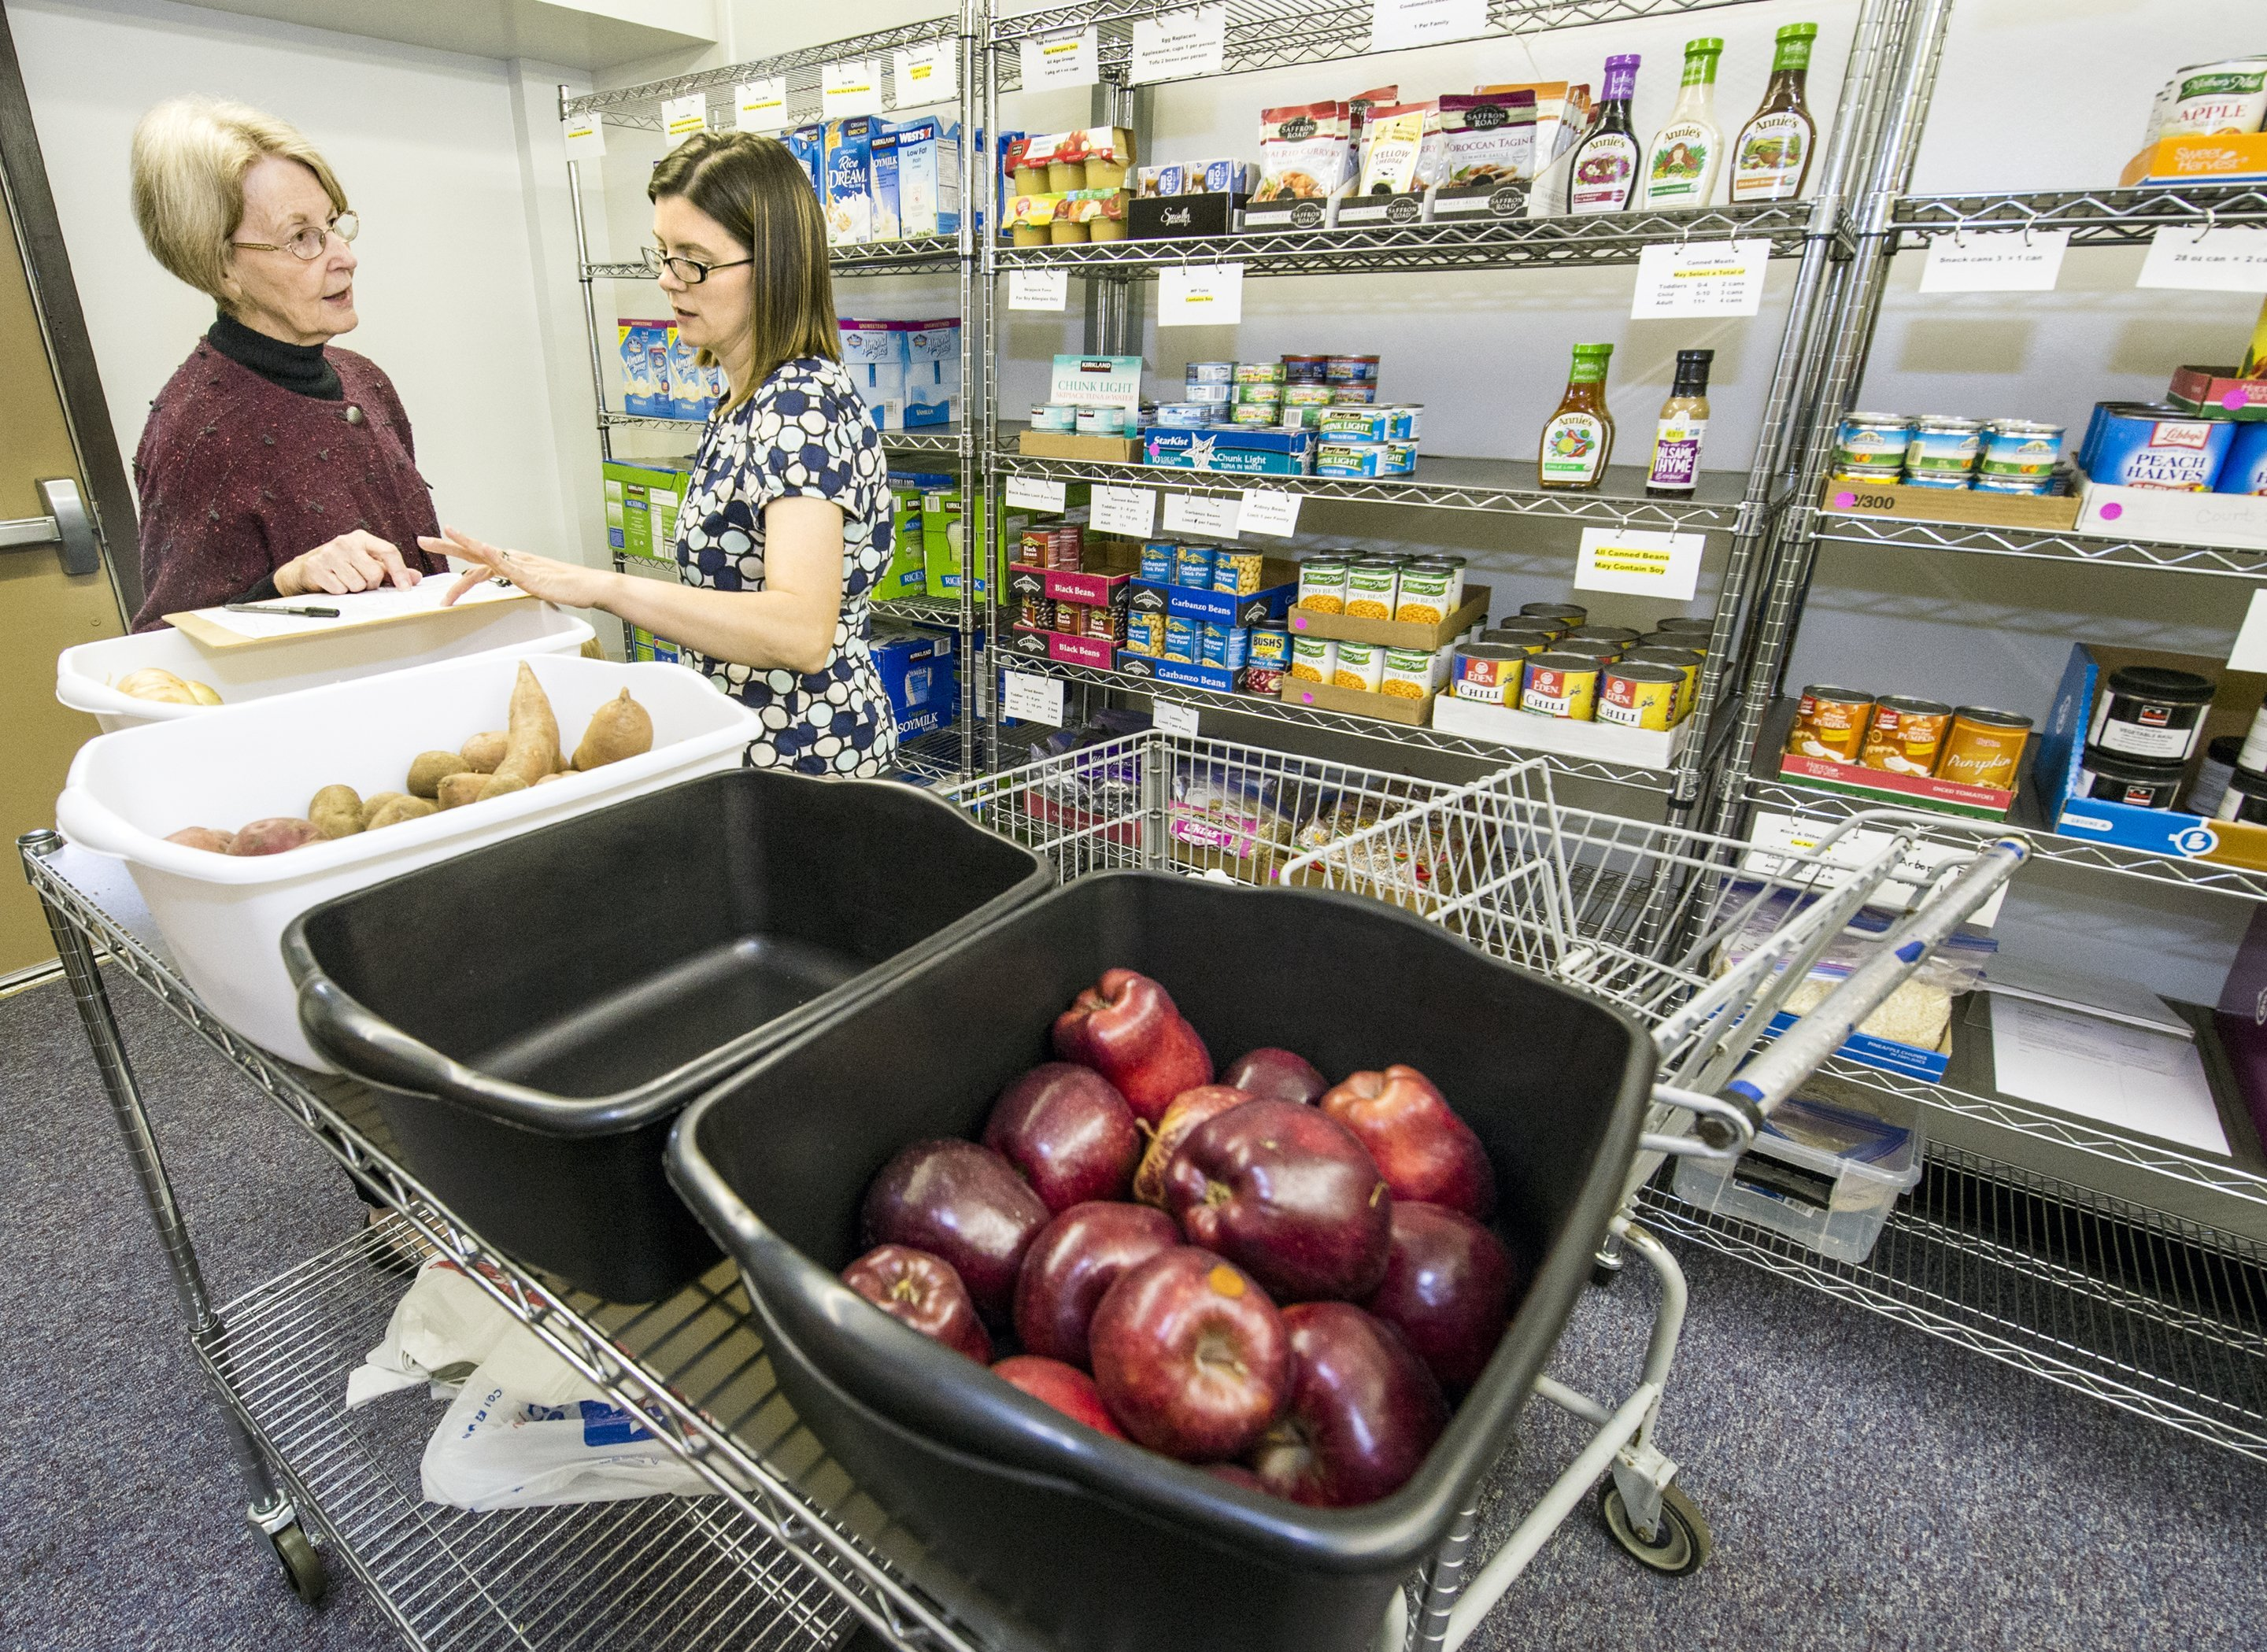 kansas food pantry helps low income families with